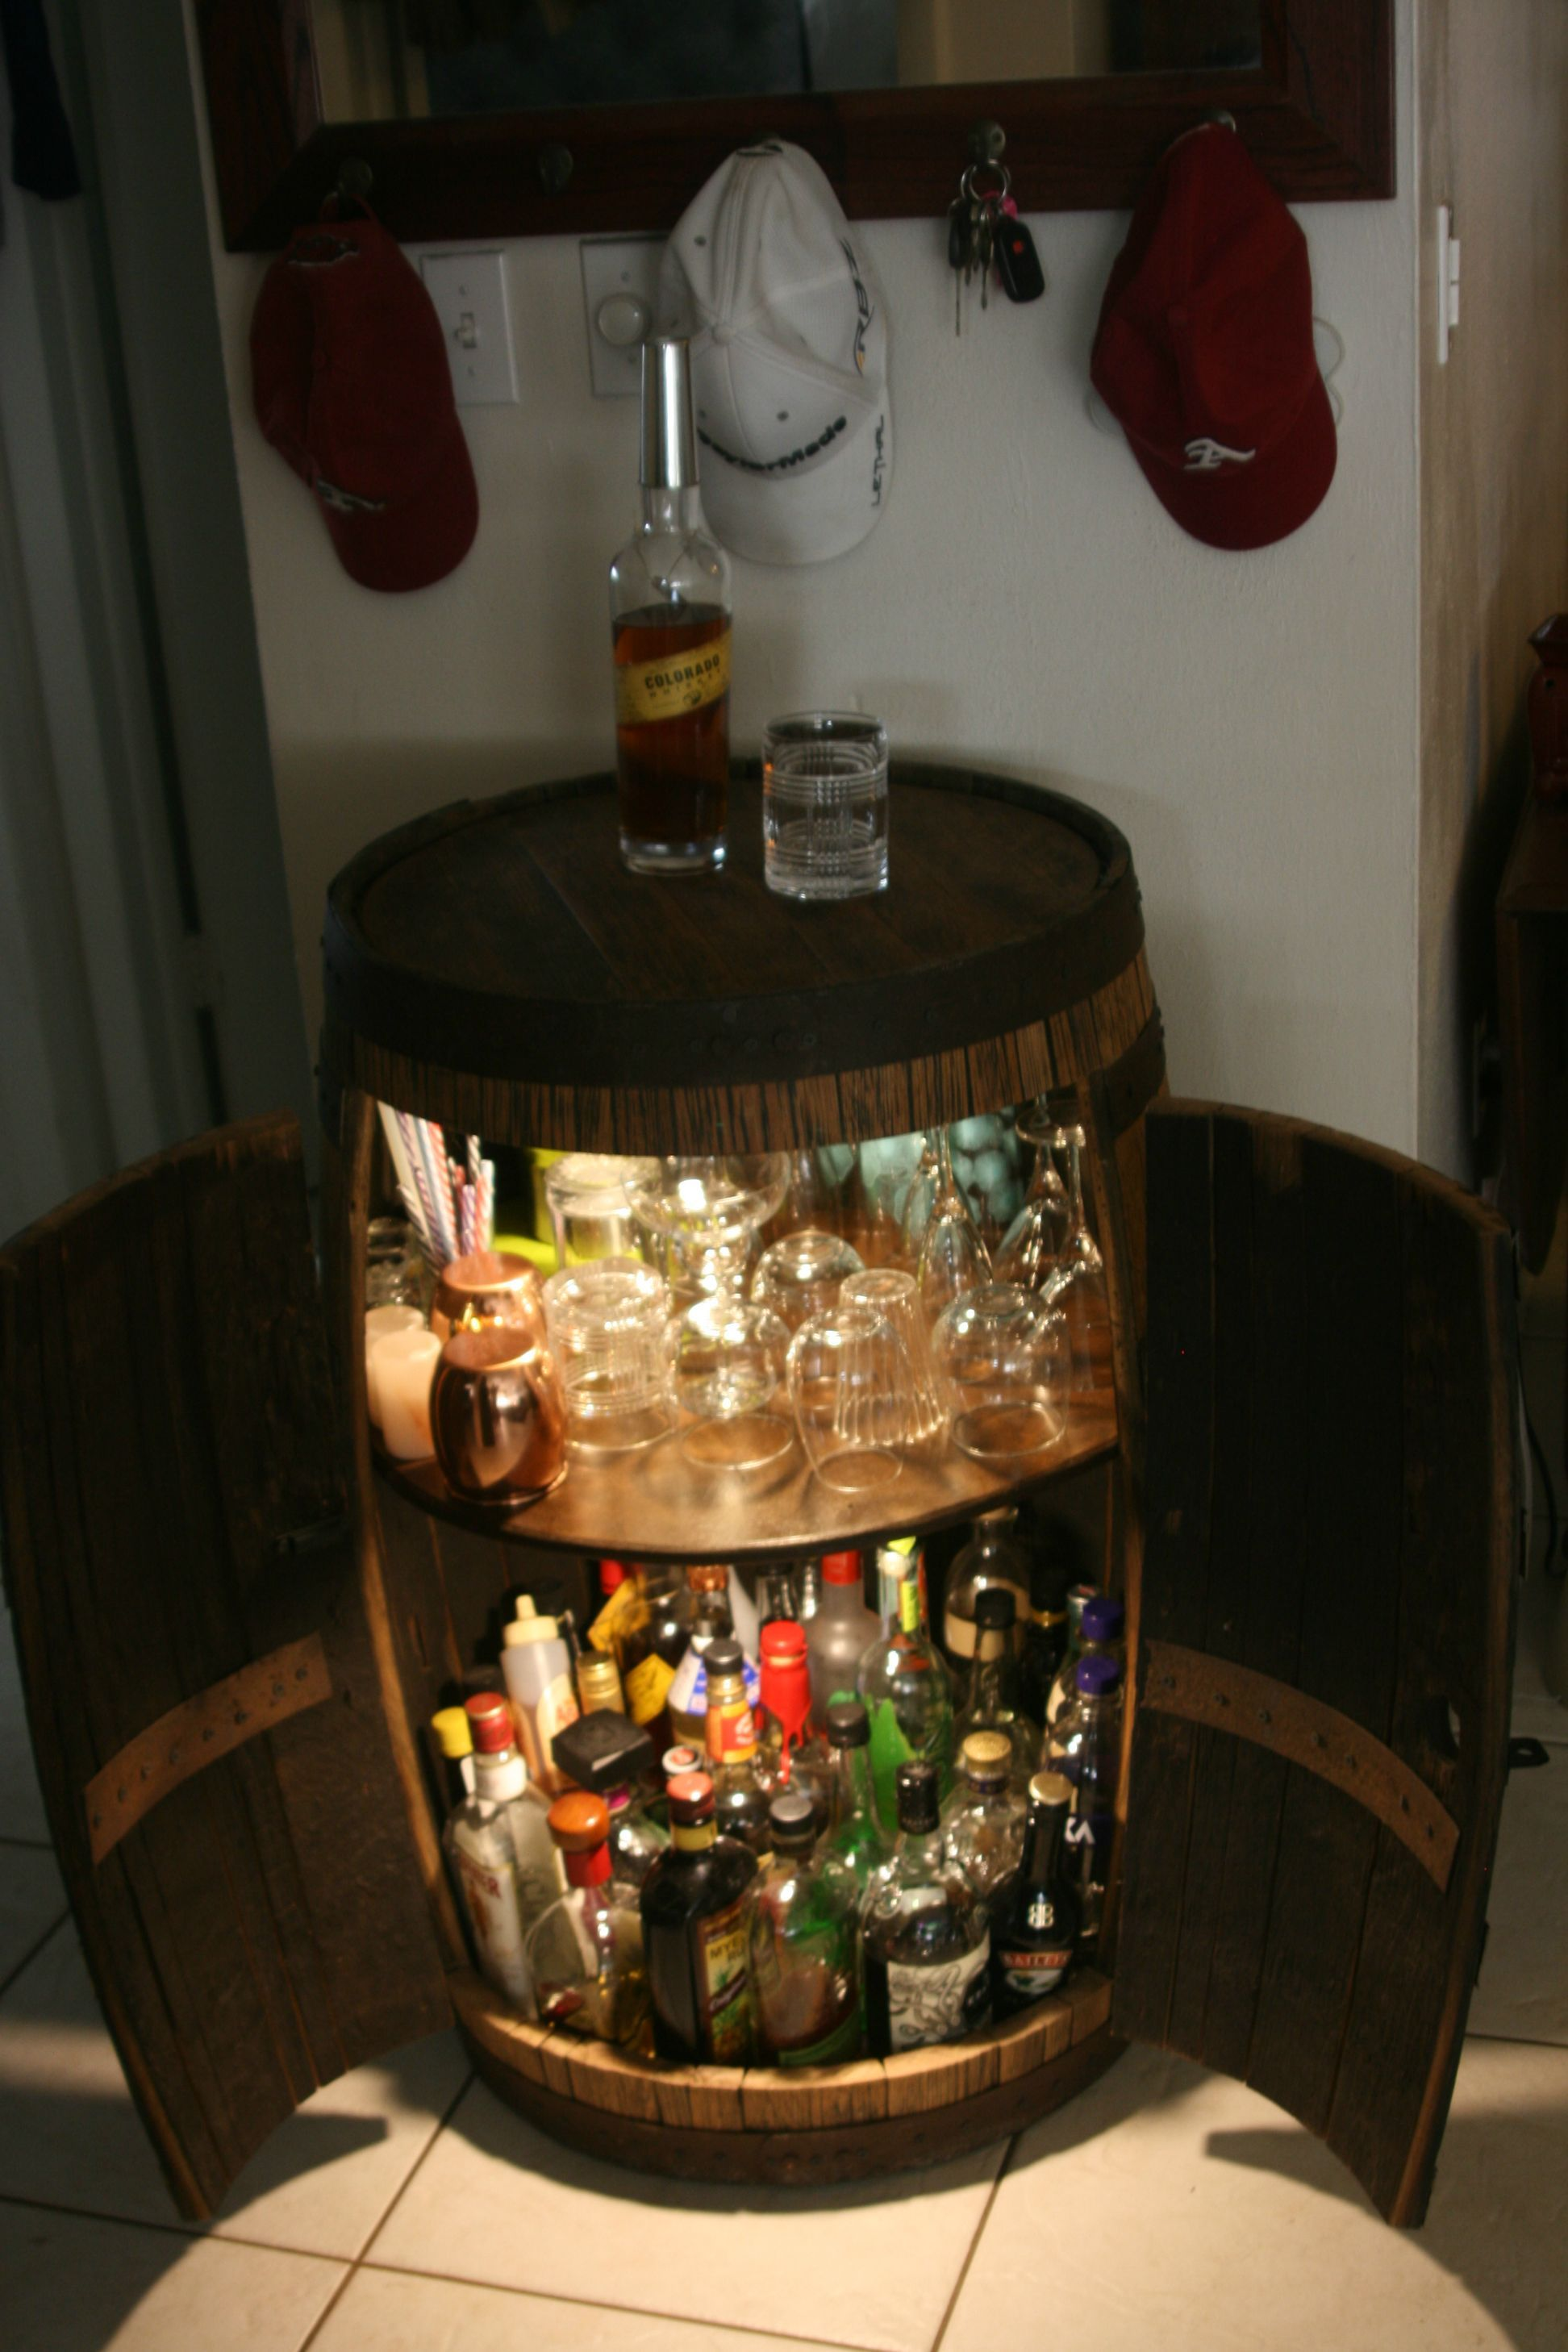 Exceptionnel Whiskey Barrel Bar Cabinet, I Wonder If I Can Make This Into A Cigar  Humidor? That Would Be Sick.